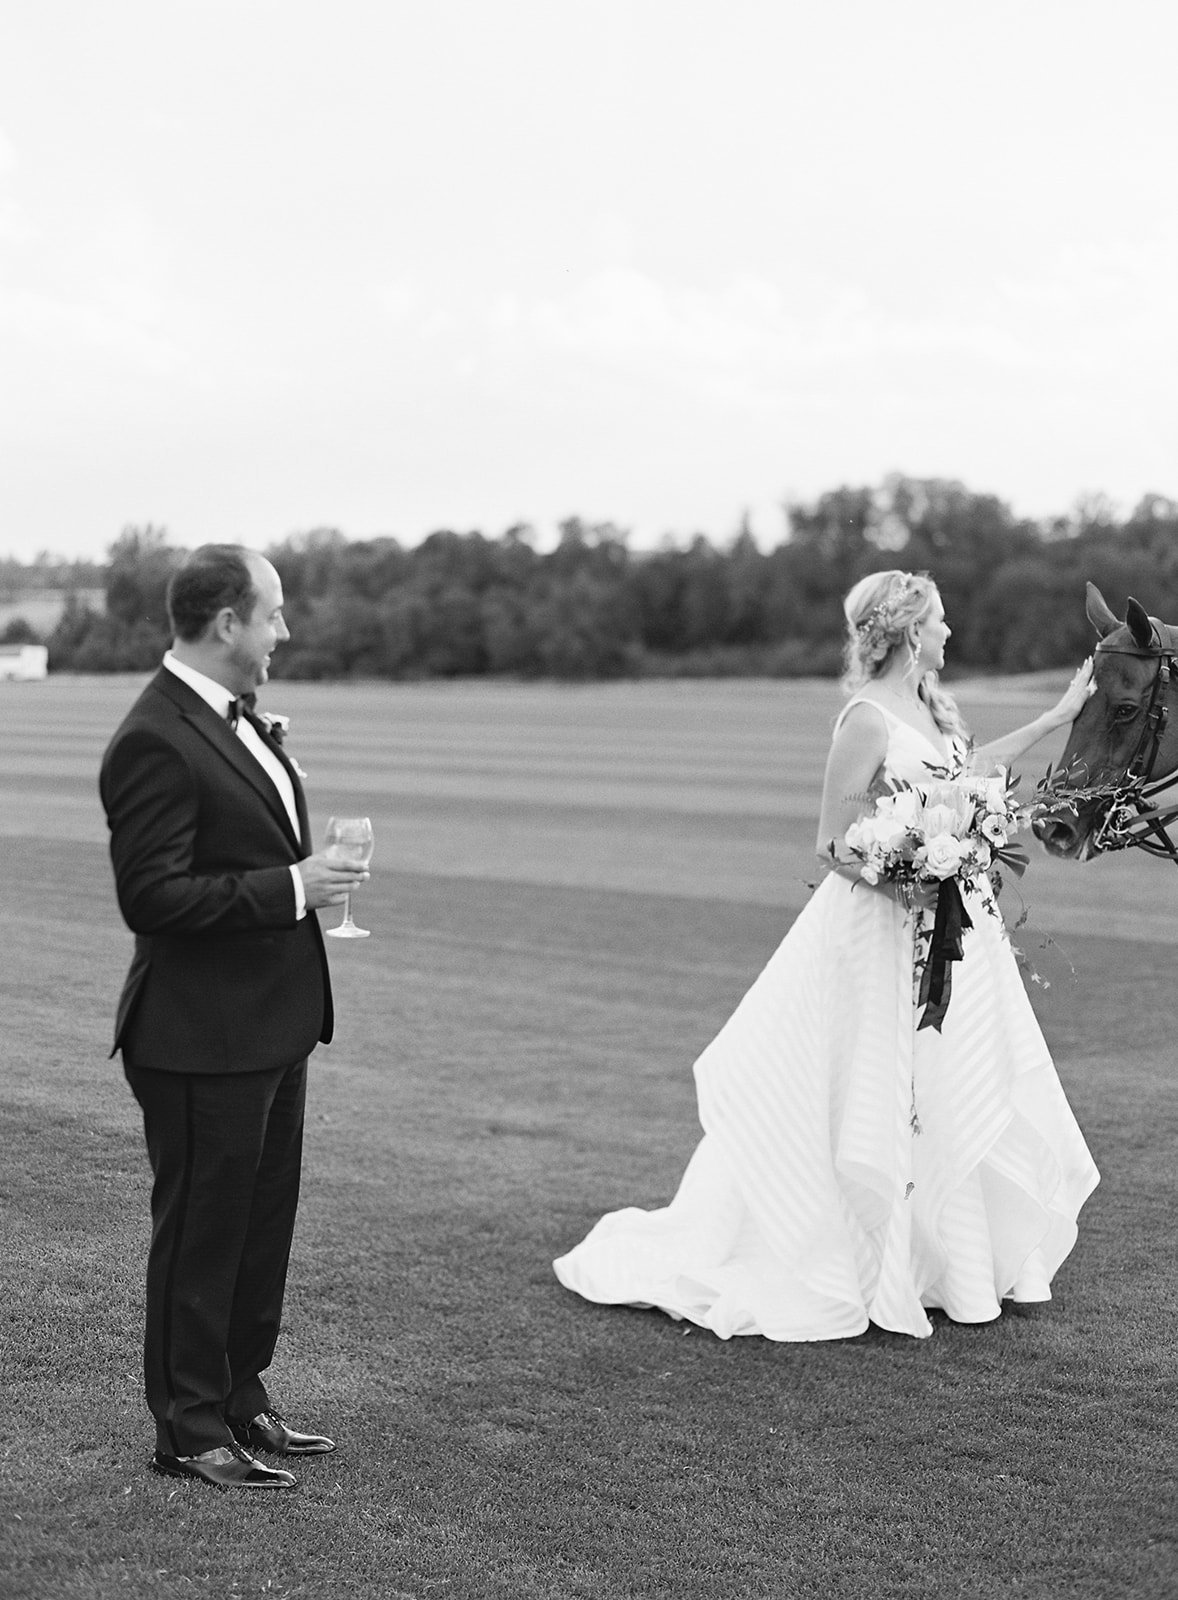 Melissa and Garrison-Wedding-Carrie King Photographer-826